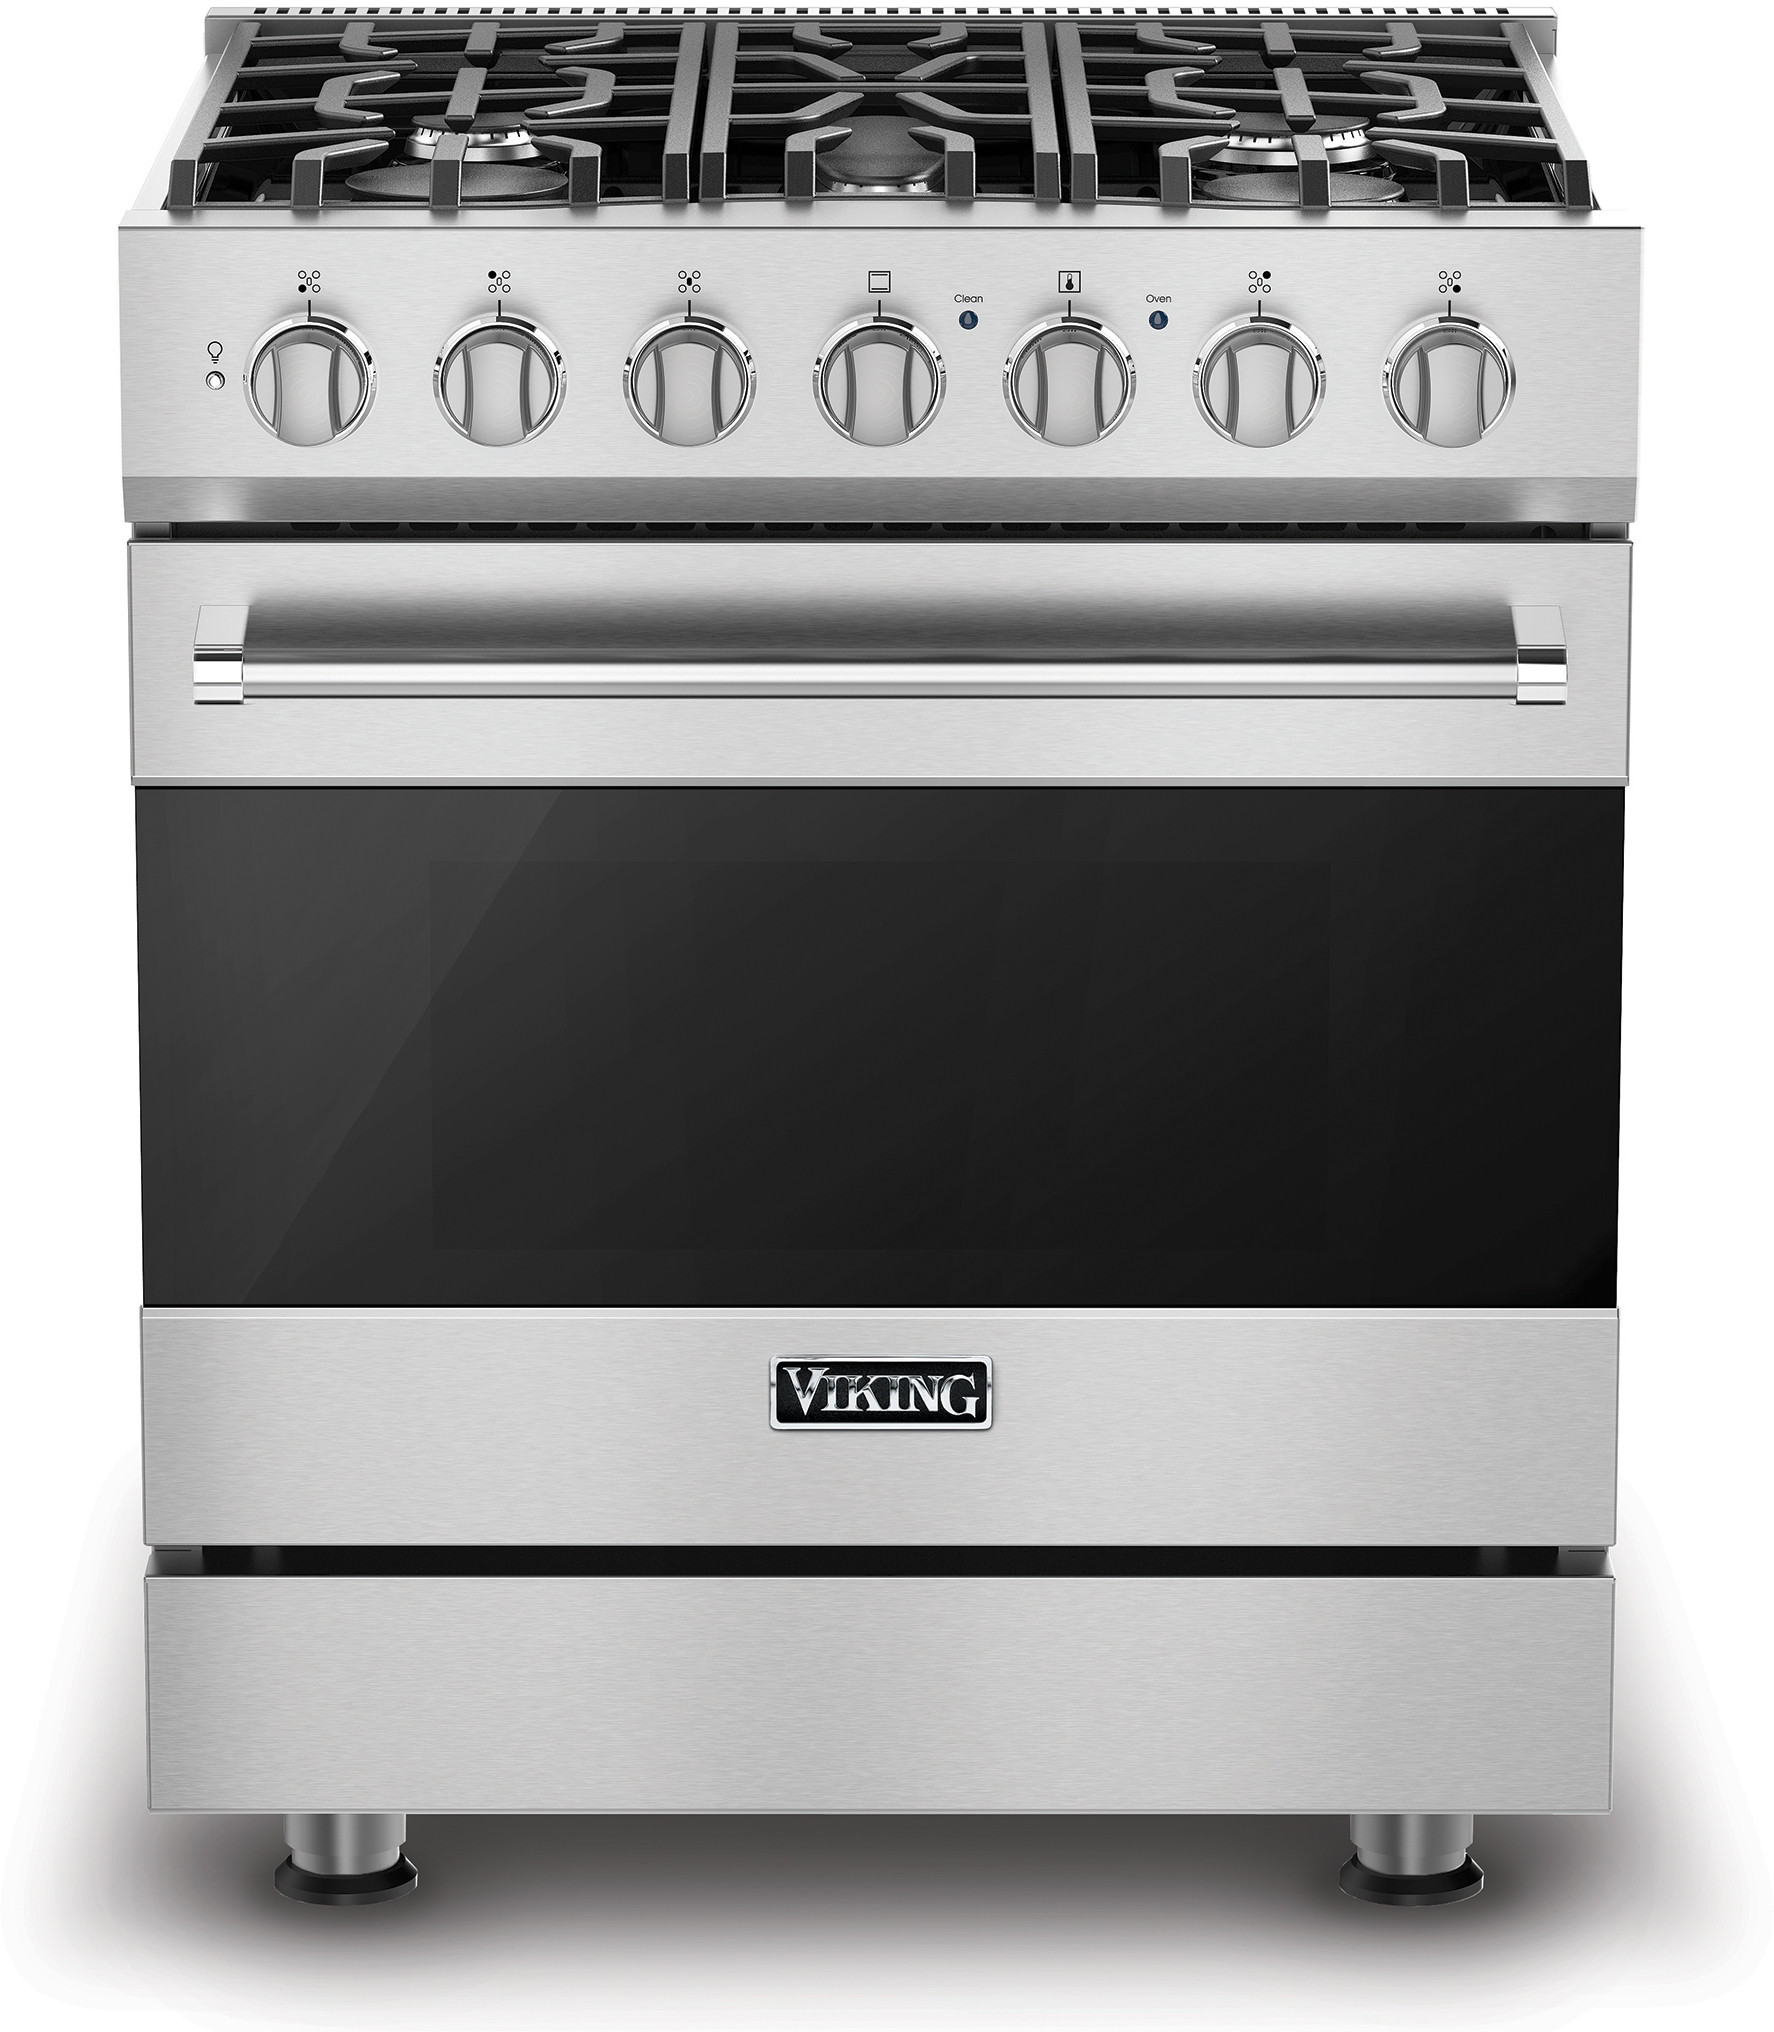 Viking Rvgr33025bss 30 Inch Freestanding Gas Range With 5 Sealed Burners 4 Cu Ft Oven Capacity Continuous Grates Self Clean Surespark Ignition System Truglide Oven Racks And Proflow Convection Baffle Stainless Steel Natural Gas